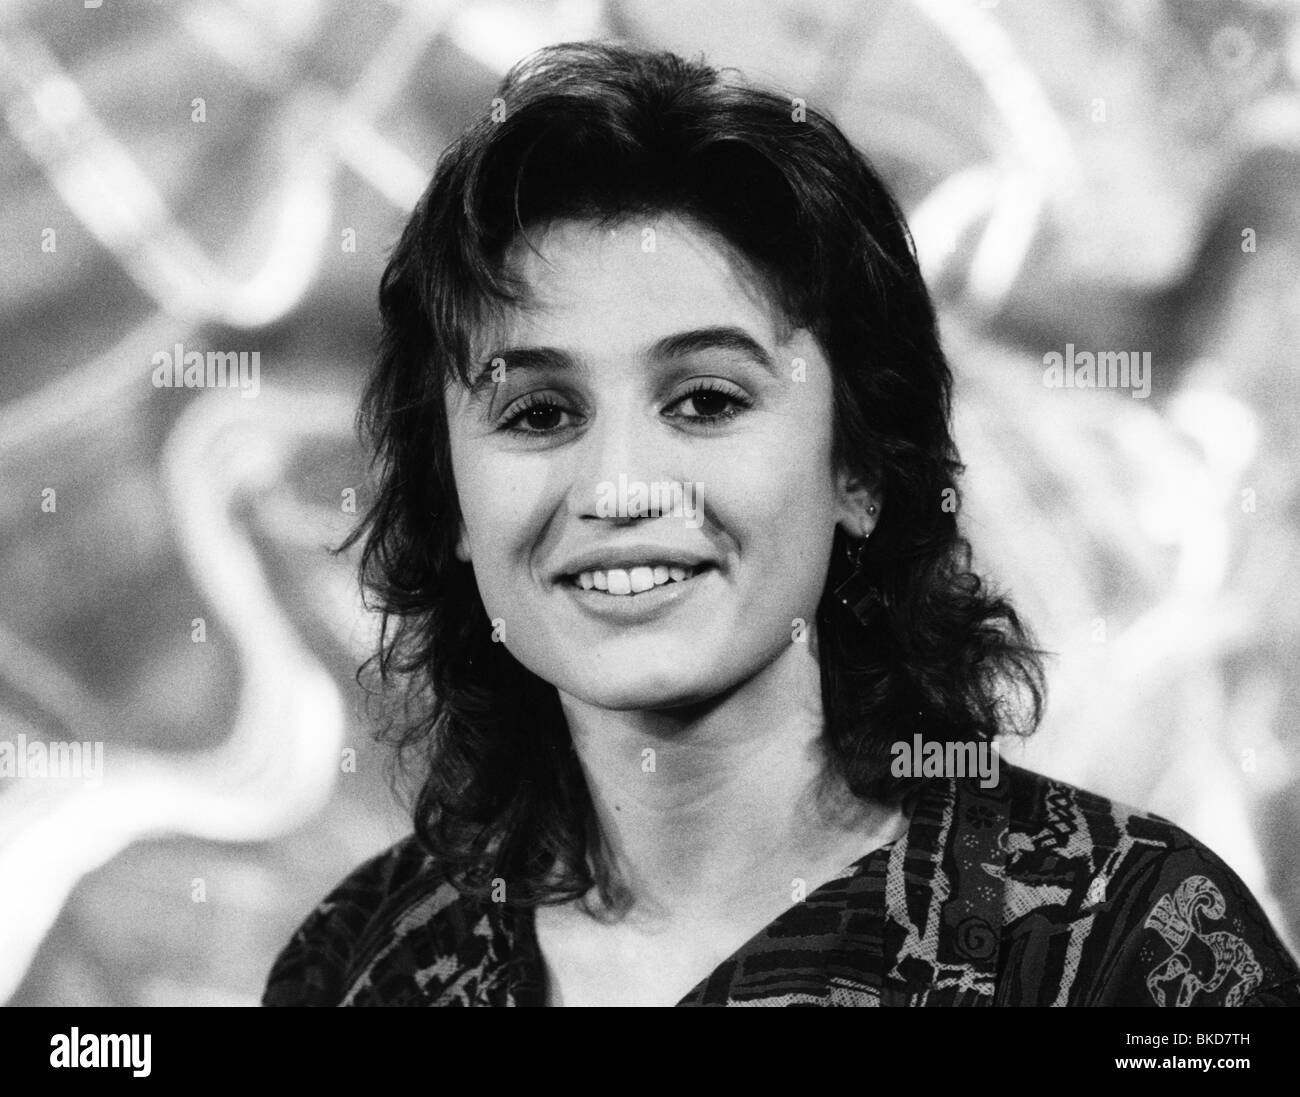 Maischberger, Sandra, * 26.8.1966, German journalist, TV presenter, portrait, circa 1990, , Stock Photo